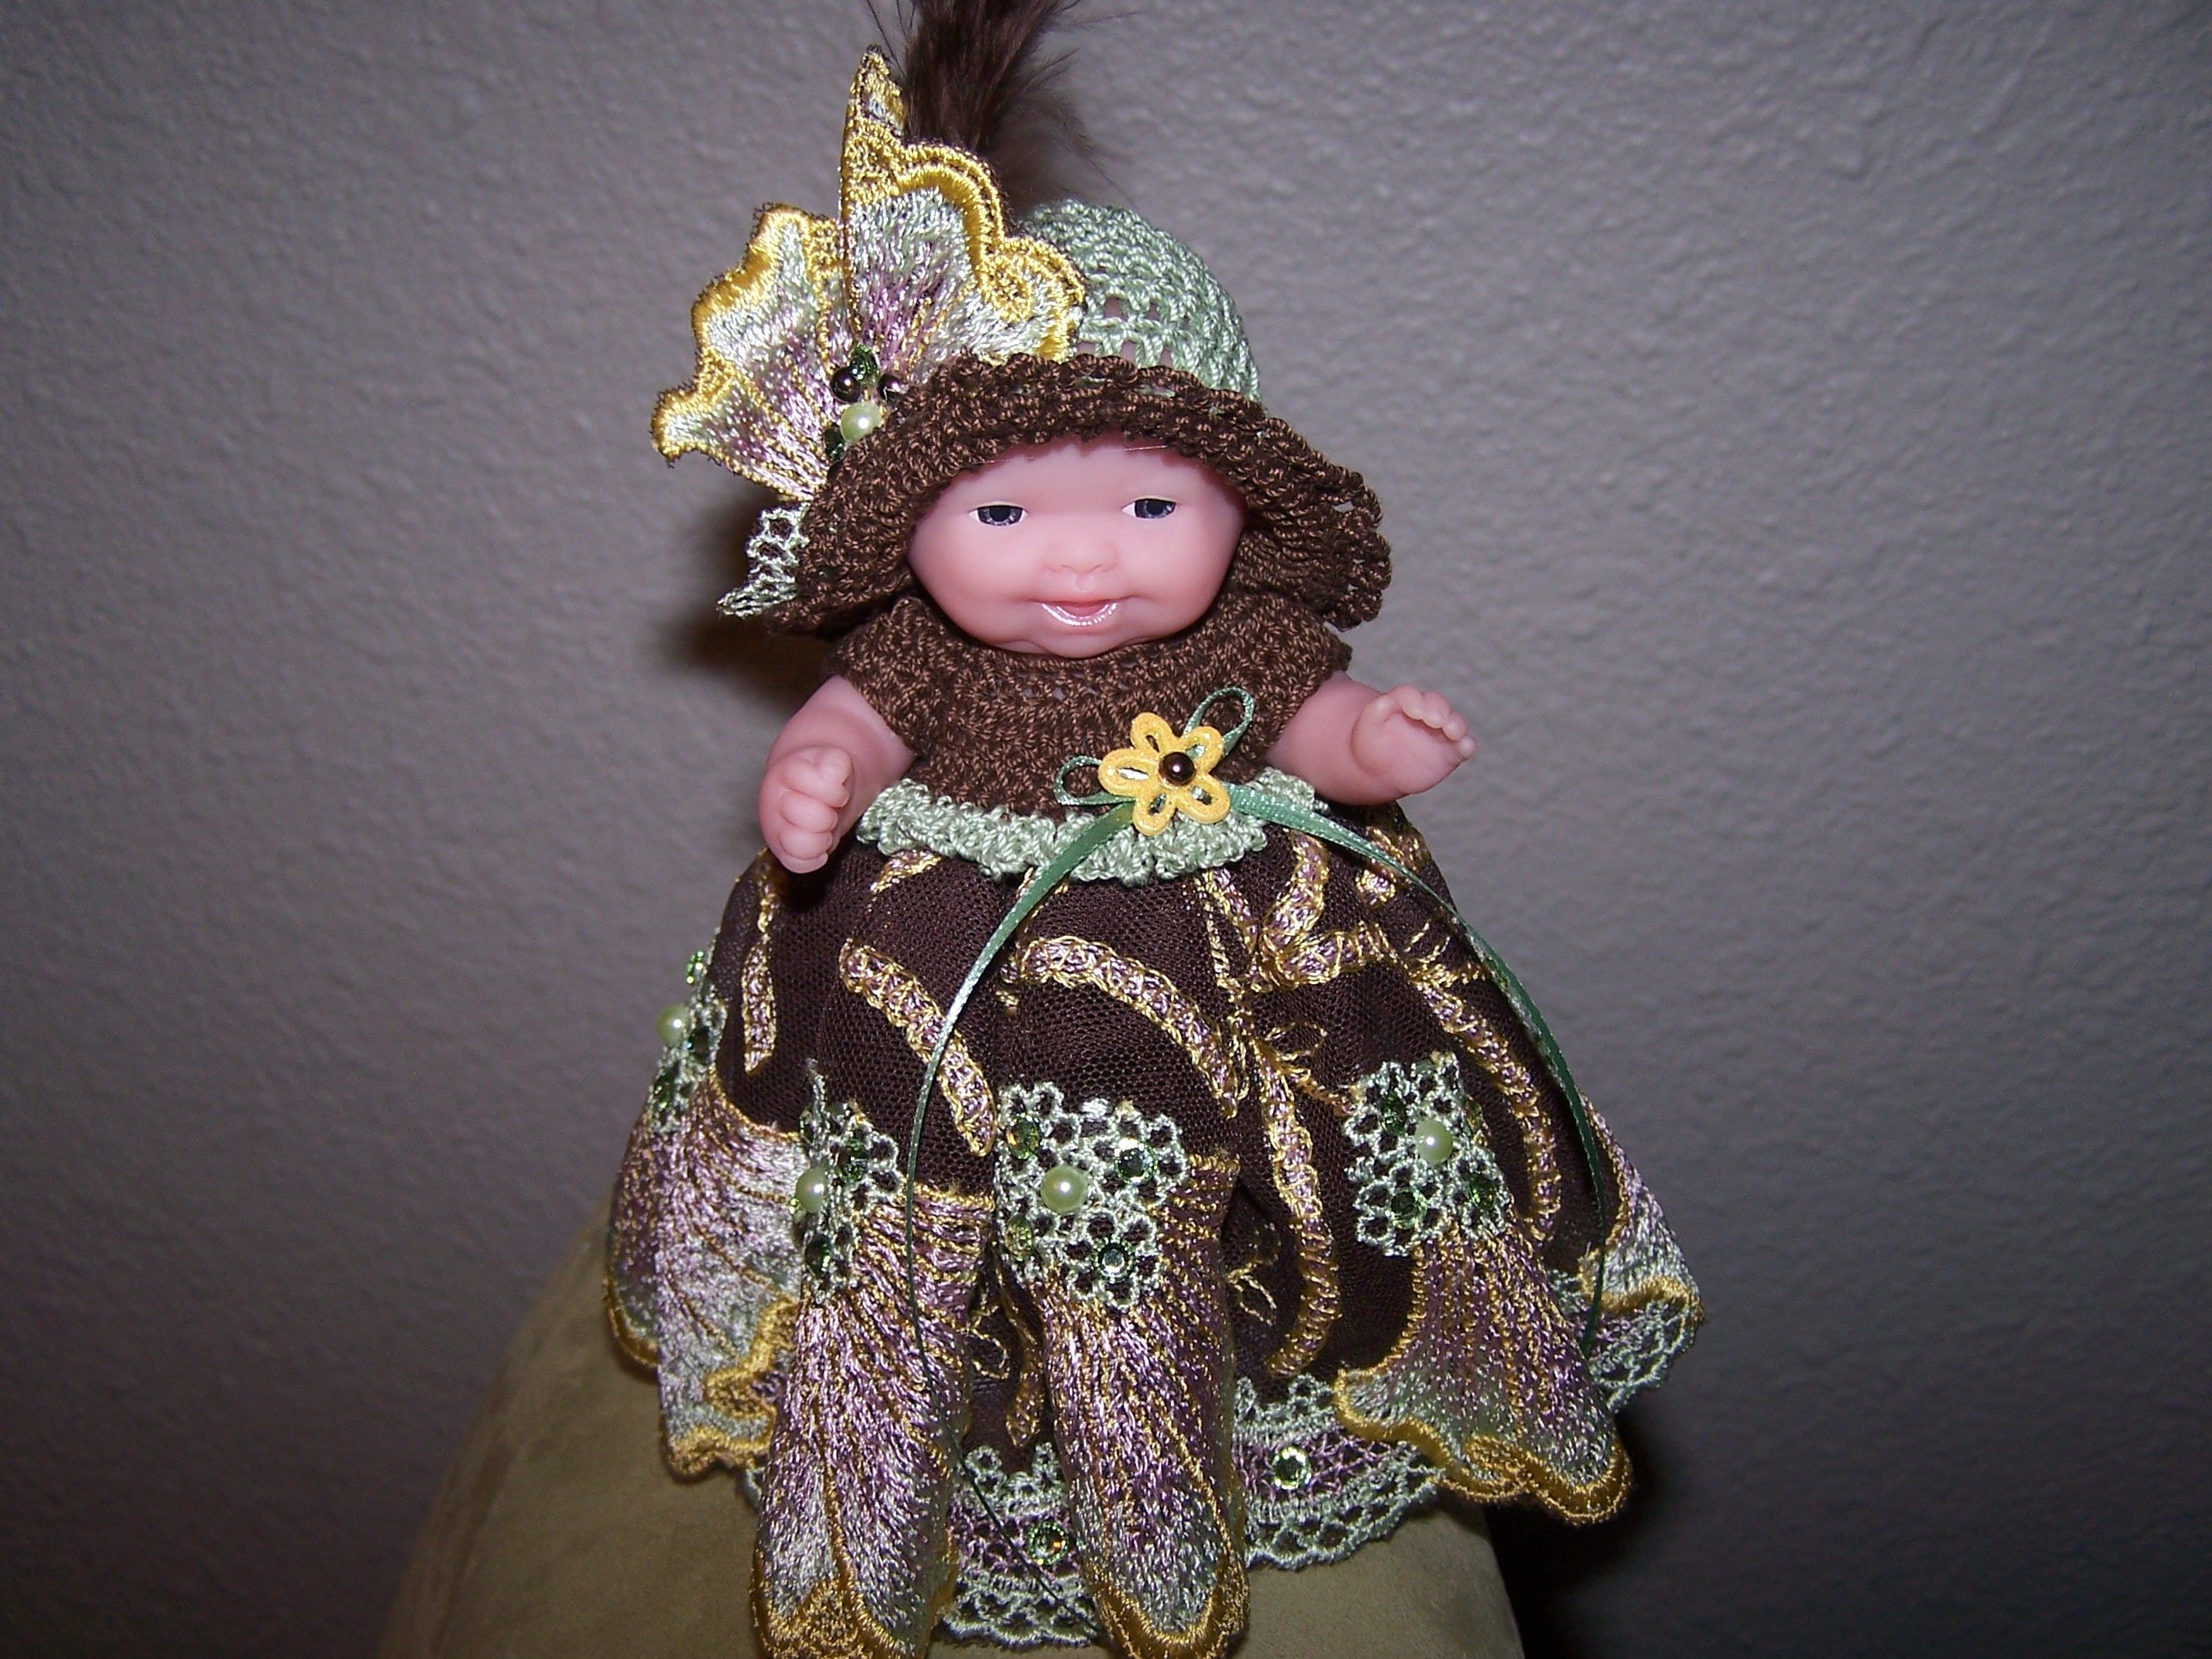 # 804 Brown/Green/Gold lace dress with matching hat.